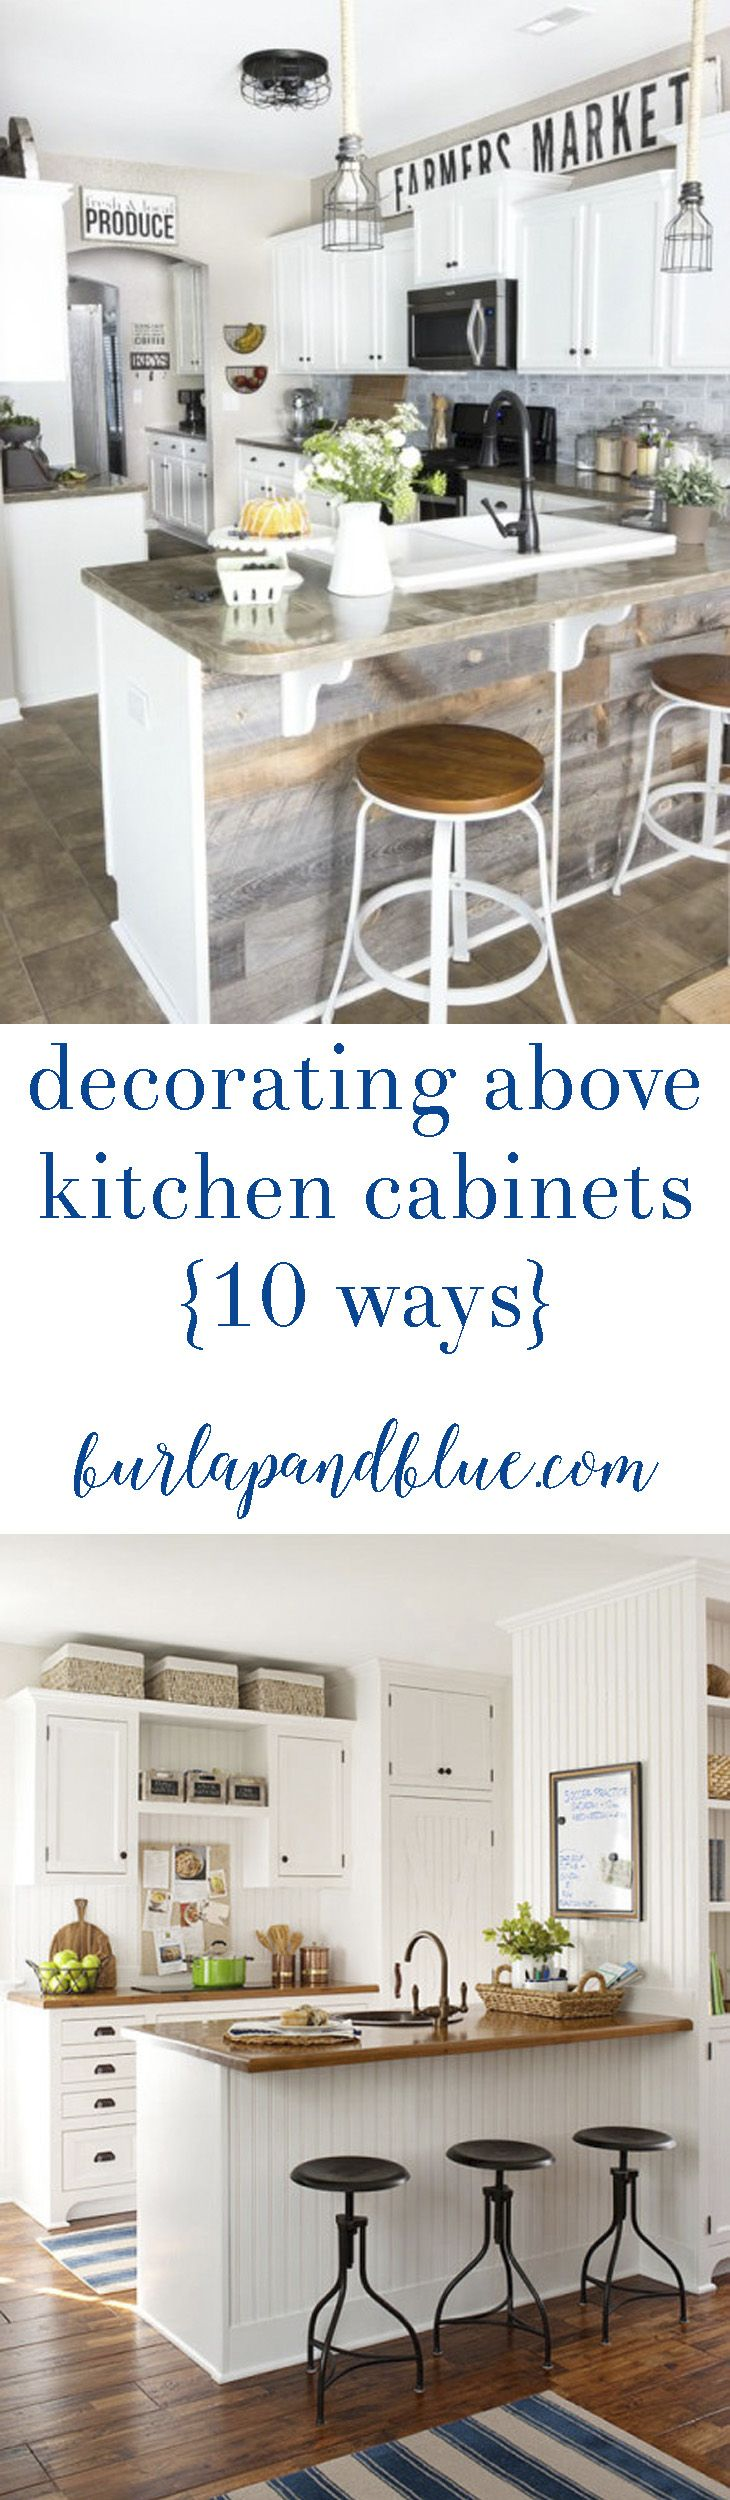 cabinets not reach the ceiling? wondering how to decorate above them? sharing 10 easy ways to decorate above kitchen cabinets! from farmhouse to classic styles, baskets to signs, there's something for everyone!